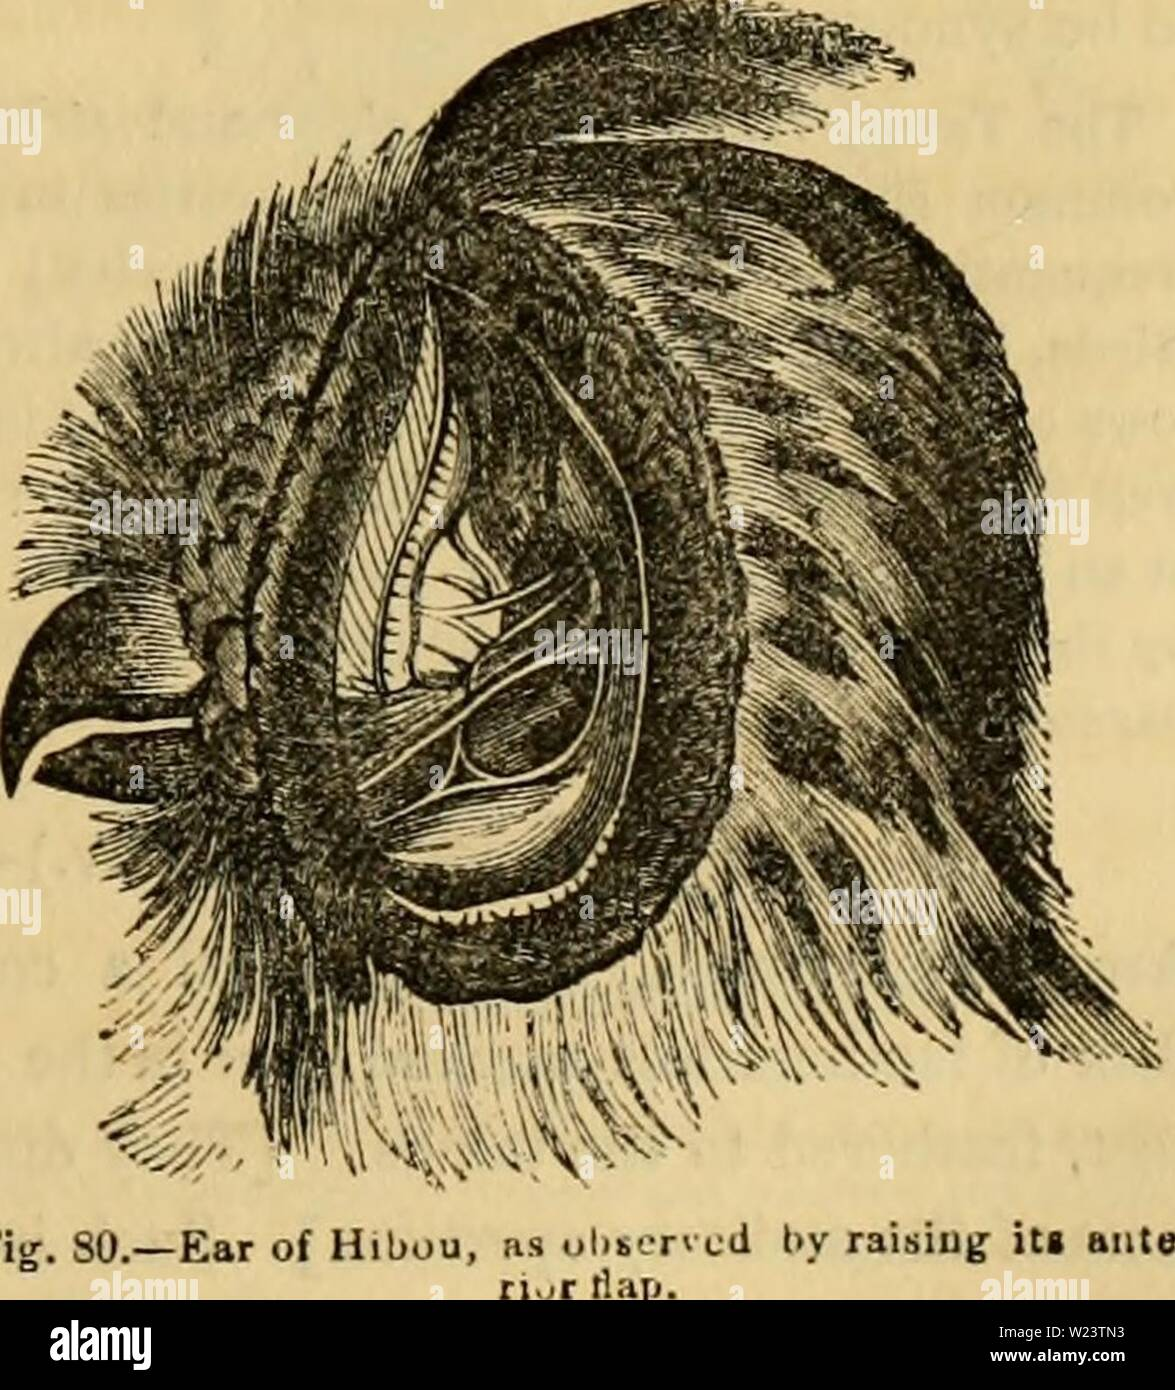 Archive image from page 184 of Cuvier's animal kingdom  arranged. Cuvier's animal kingdom : arranged according to its organization  cuviersanimalkin00cuvi Year: 1840  The Owls {Strix, Linn.),— Which may be divided according to their head-tufts, the size of their ears, the extent of the circle of feathers which surrounds their eyes, and some other characters. Those species which around the eyes have a large complete disk of fringed feathers, itself siurounded by a circle or collar of scaly feathers, and between the two a large opening for the ear (see fig. 80), are more removed in their form an - Stock Image